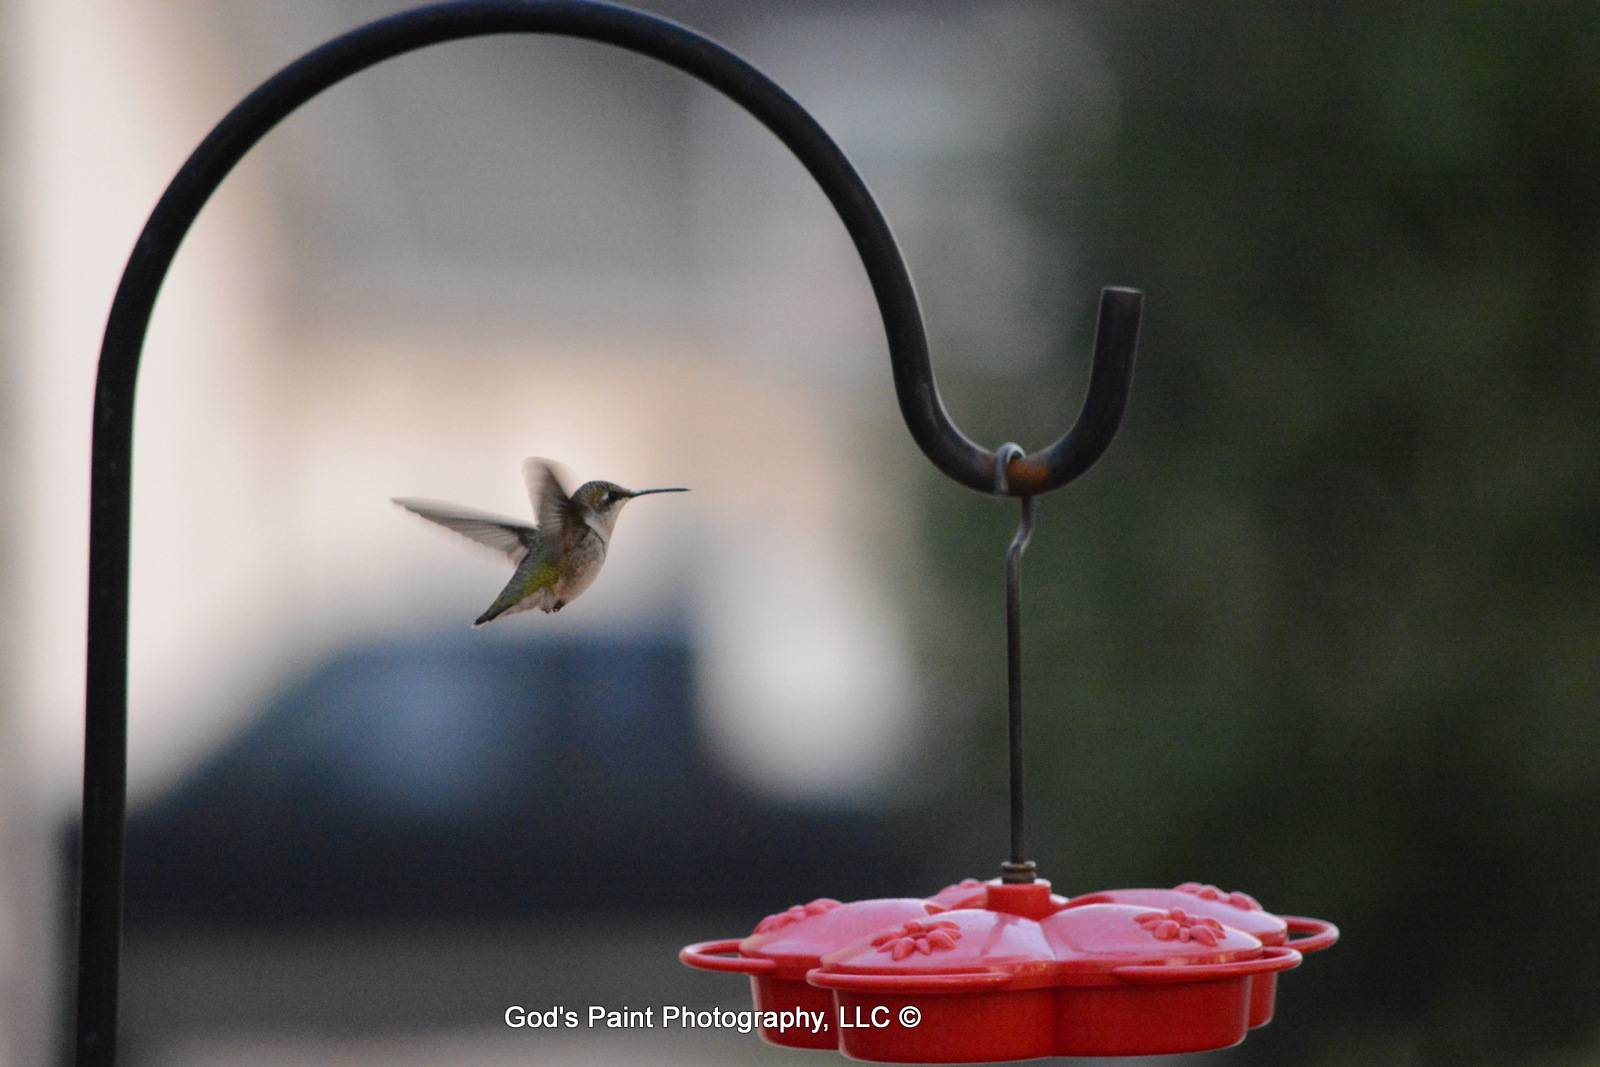 Hummingbird Buzzing Happily Around The Feeder